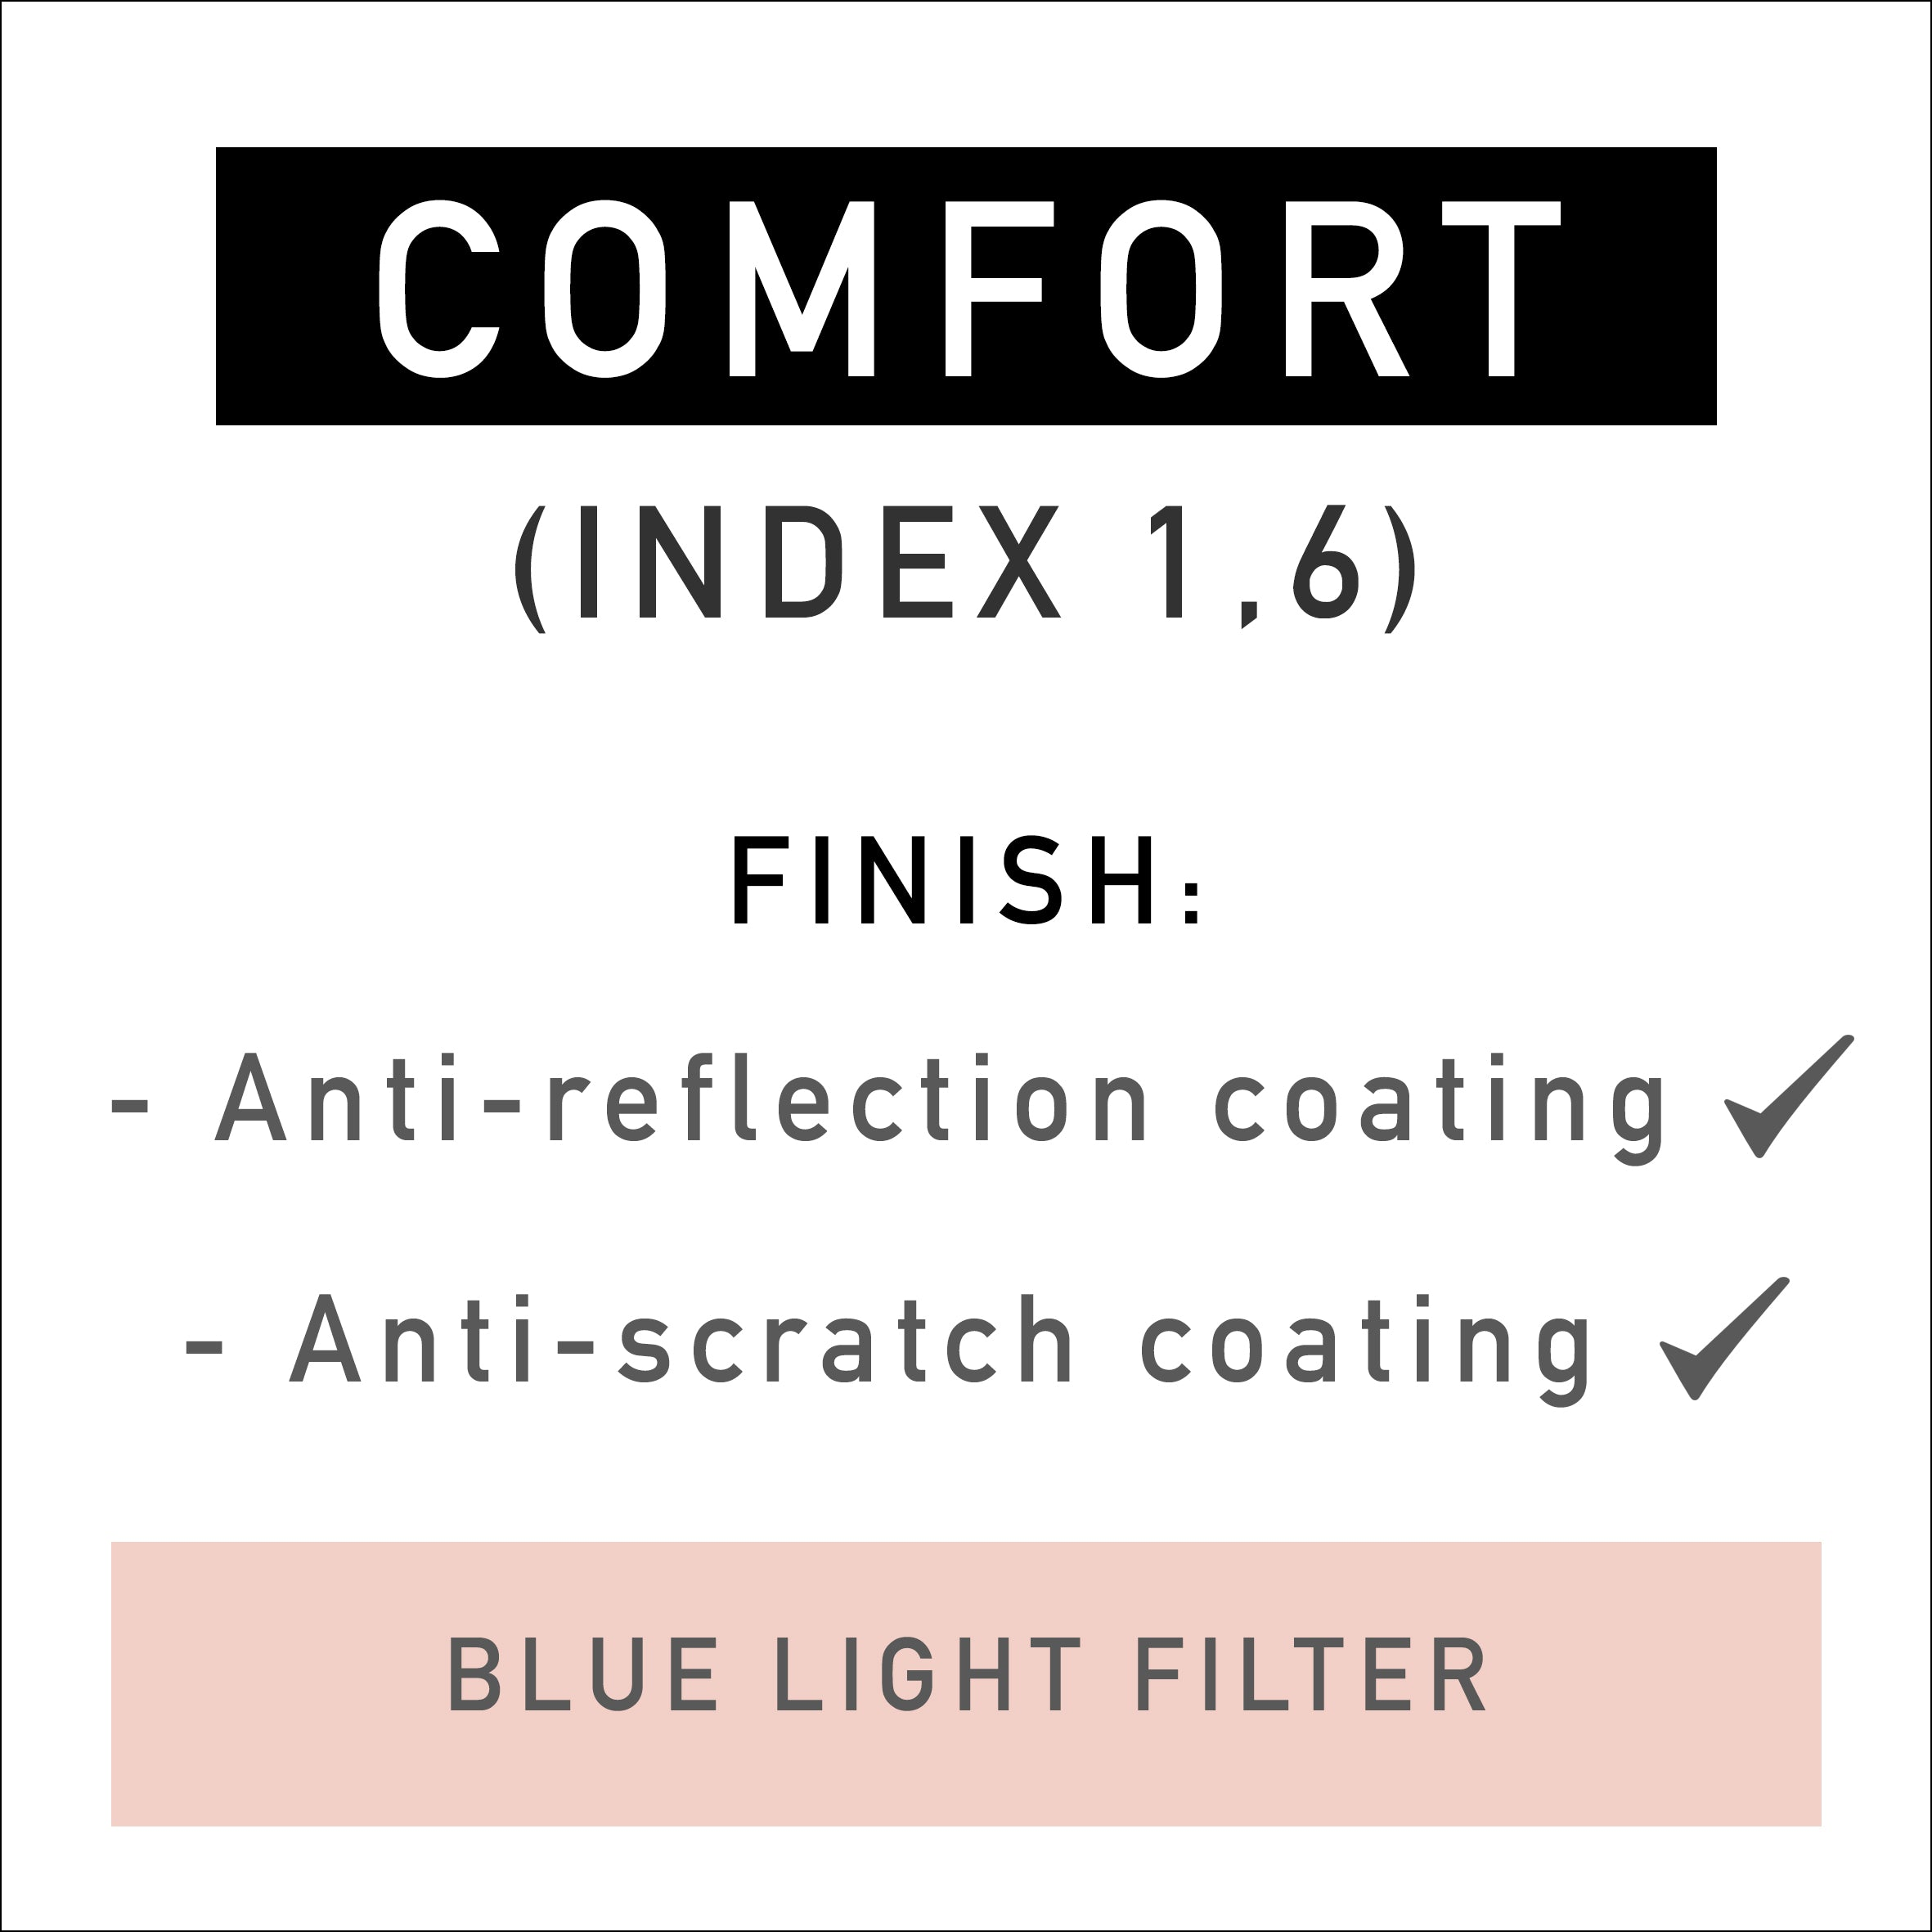 COMFORT Lenses incl. Blue Light Filter